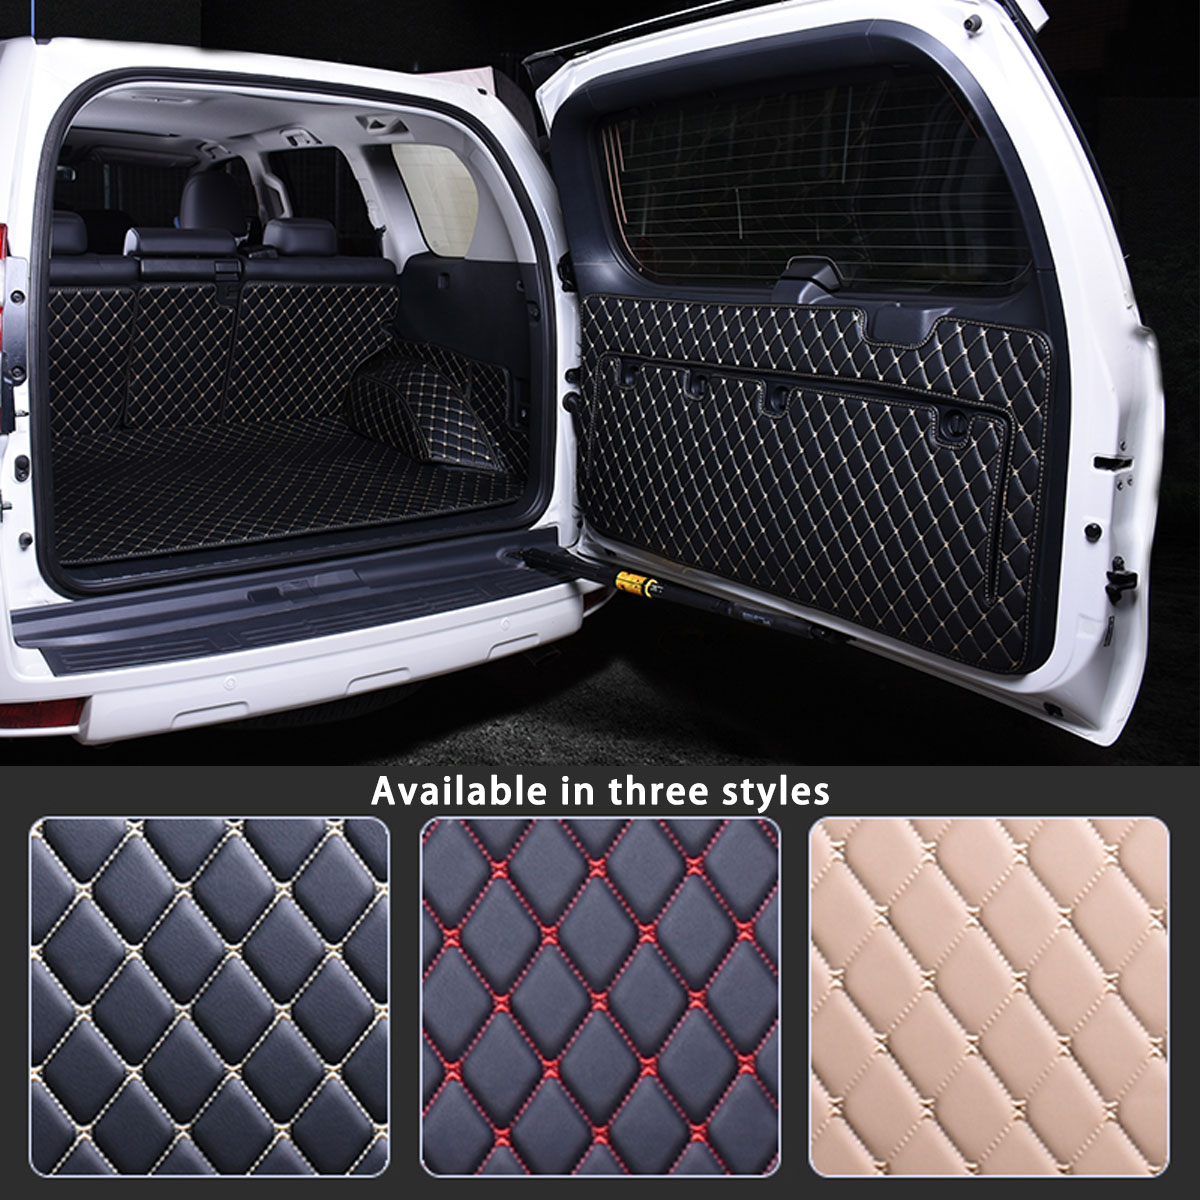 Cargo Rear Trunk Tailgate Tail Gate Door Mat Cover Floor Carpet Mud Pad Kick Tray For <font><b>Toyota</b></font> Land Cruiser Prado <font><b>150</b></font> 2010 - 2018 image